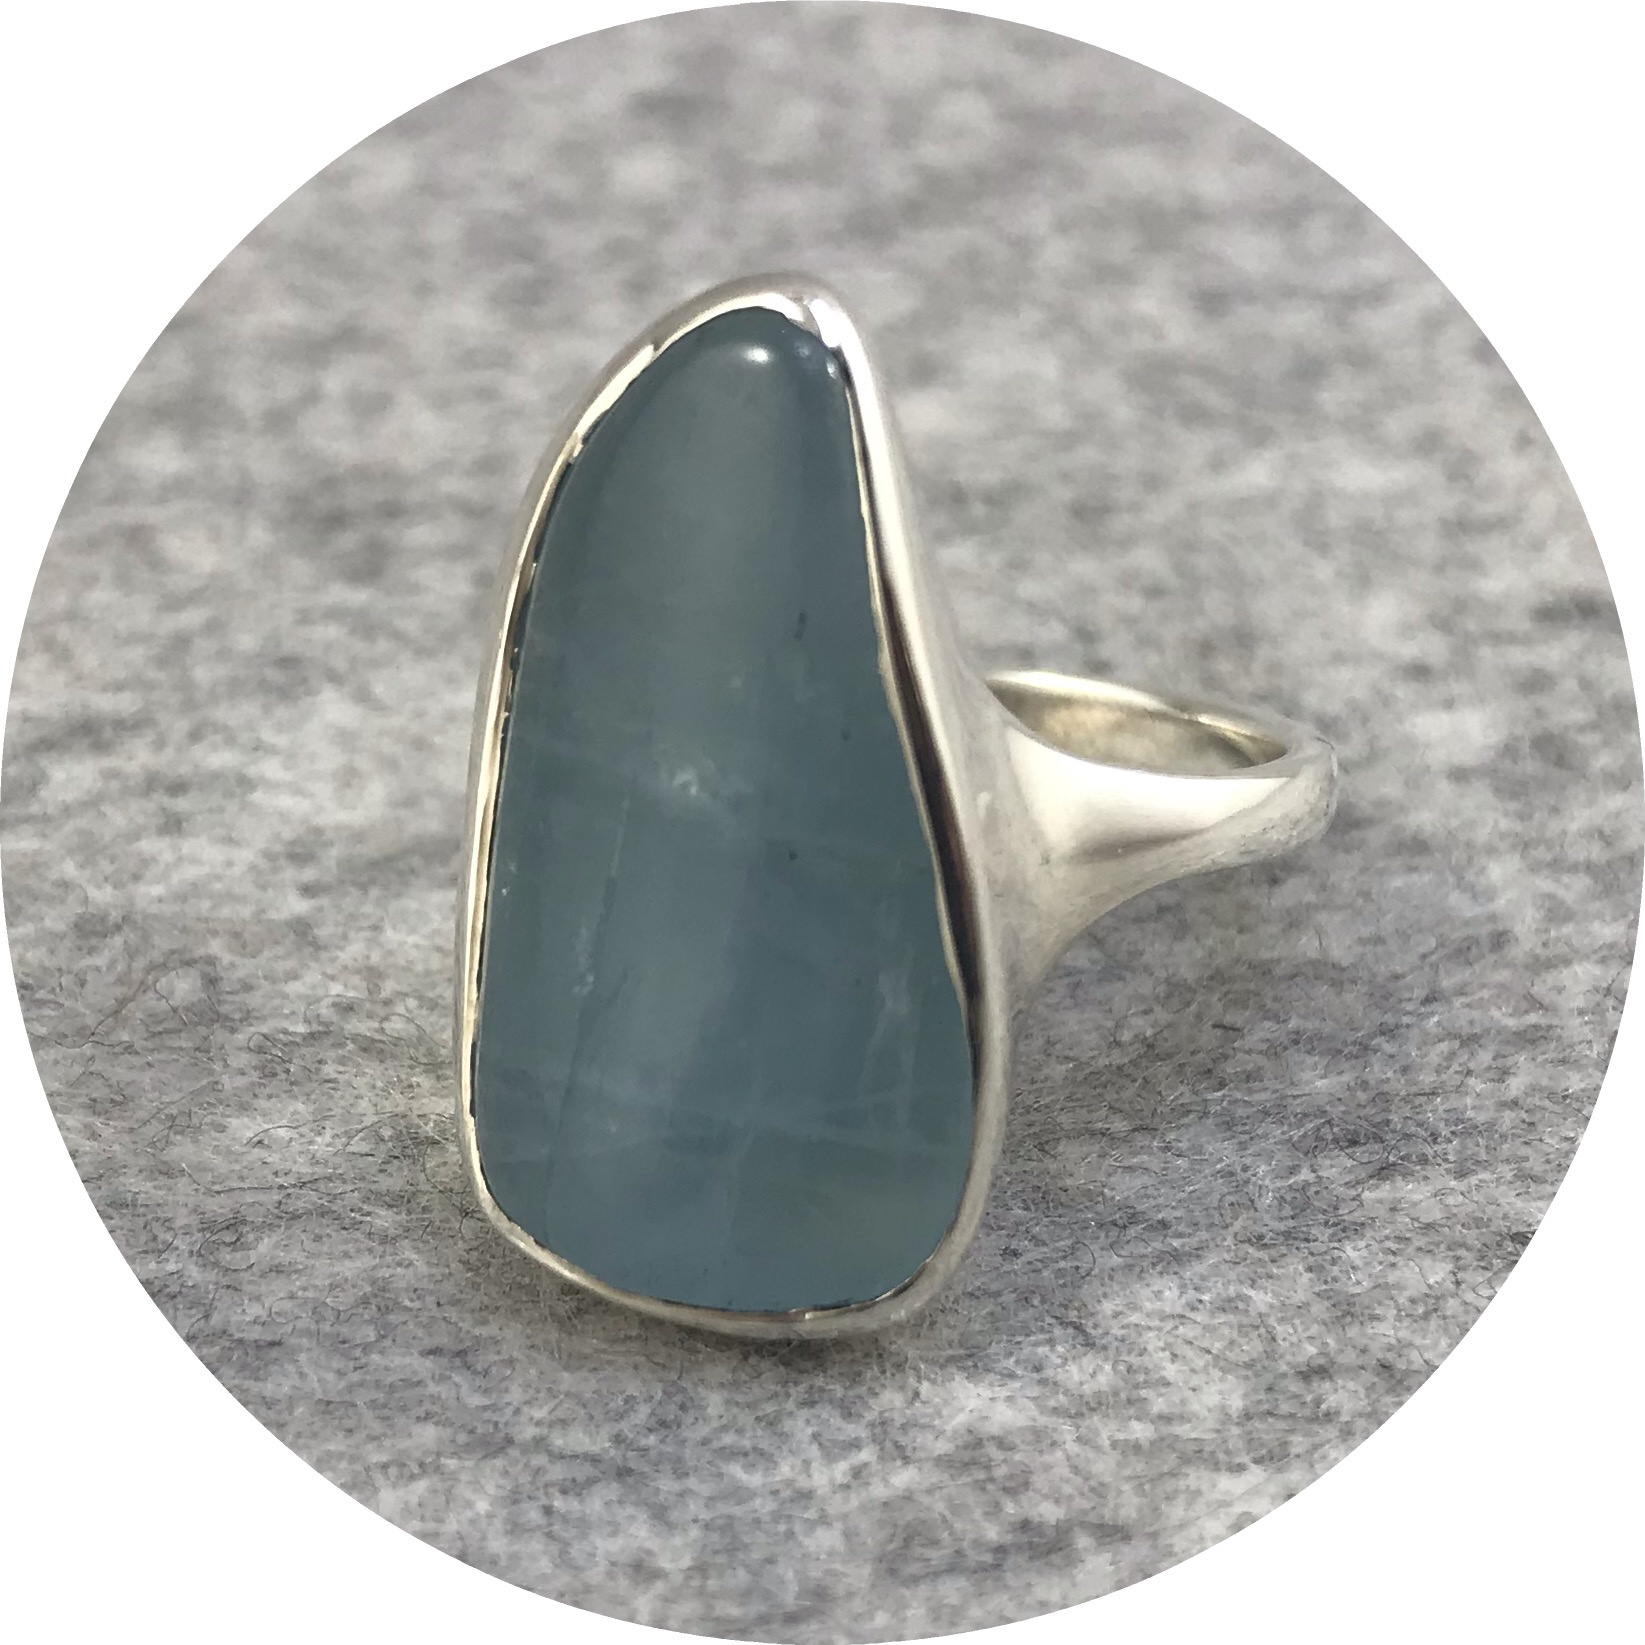 Leonie Simpson - Aquamarine Stone Set in a Sterling Silver Ring